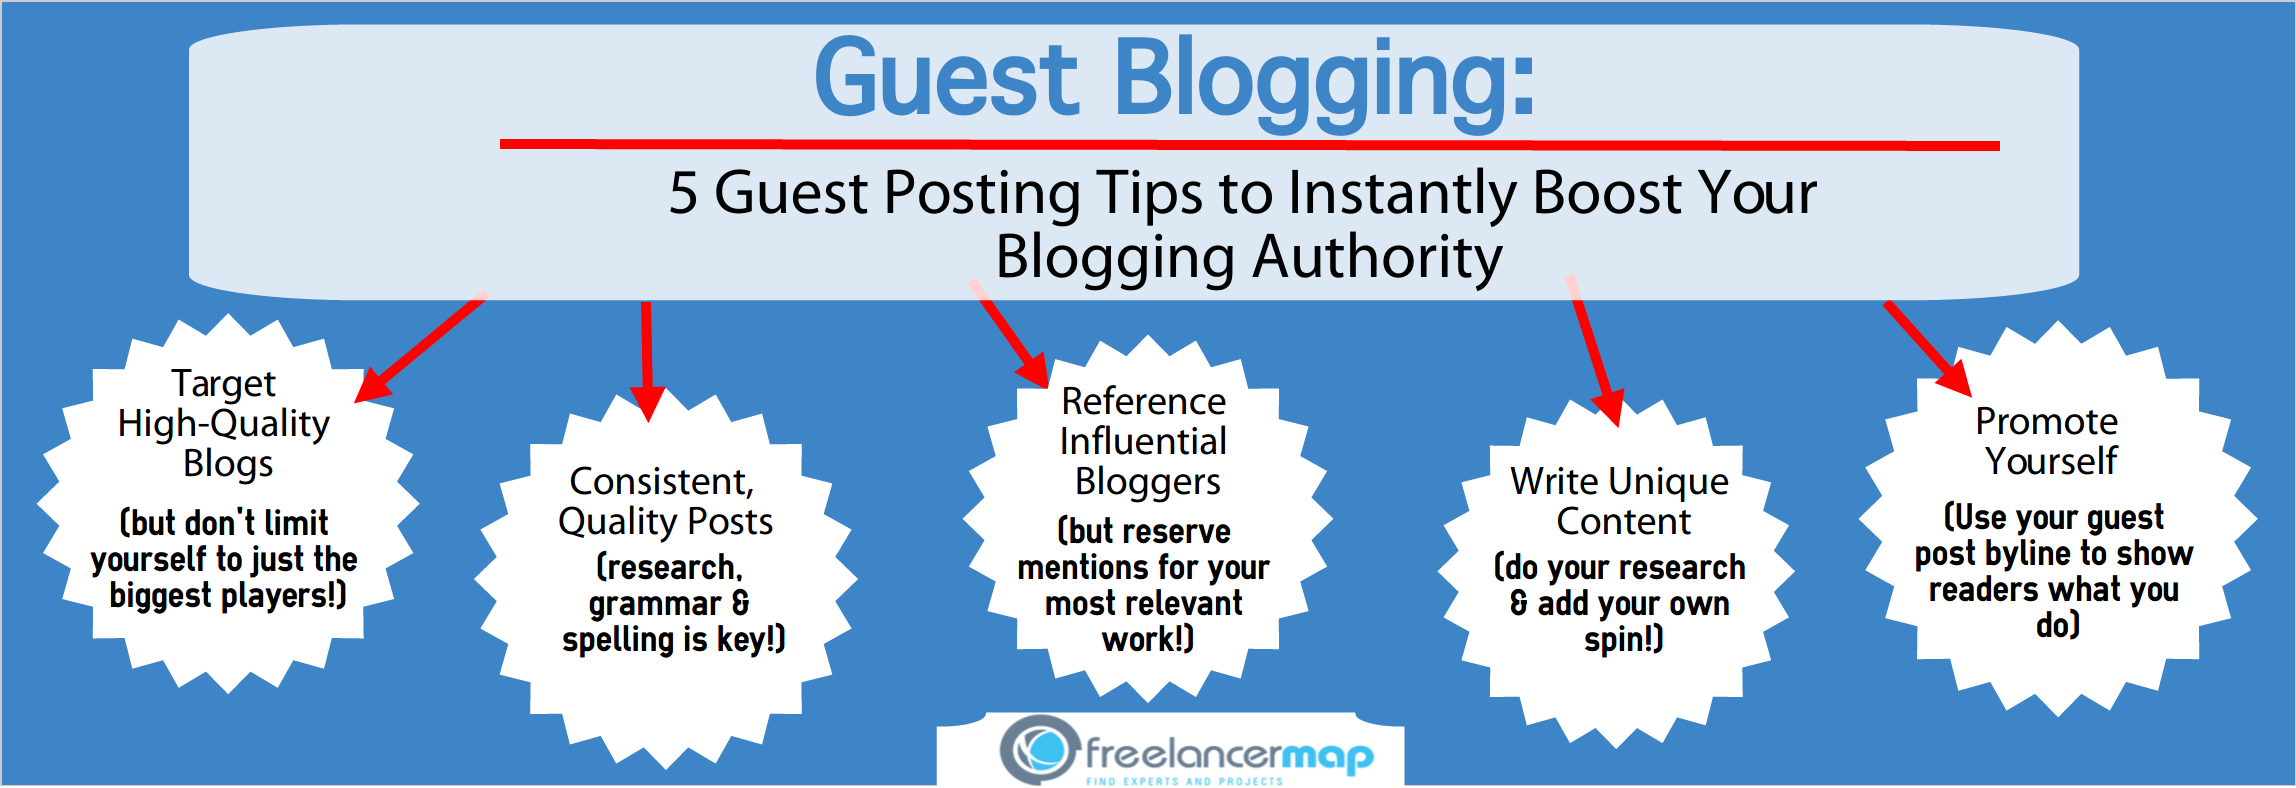 5 Sure-Fire Guest Blogging Tips That Will Boost Your